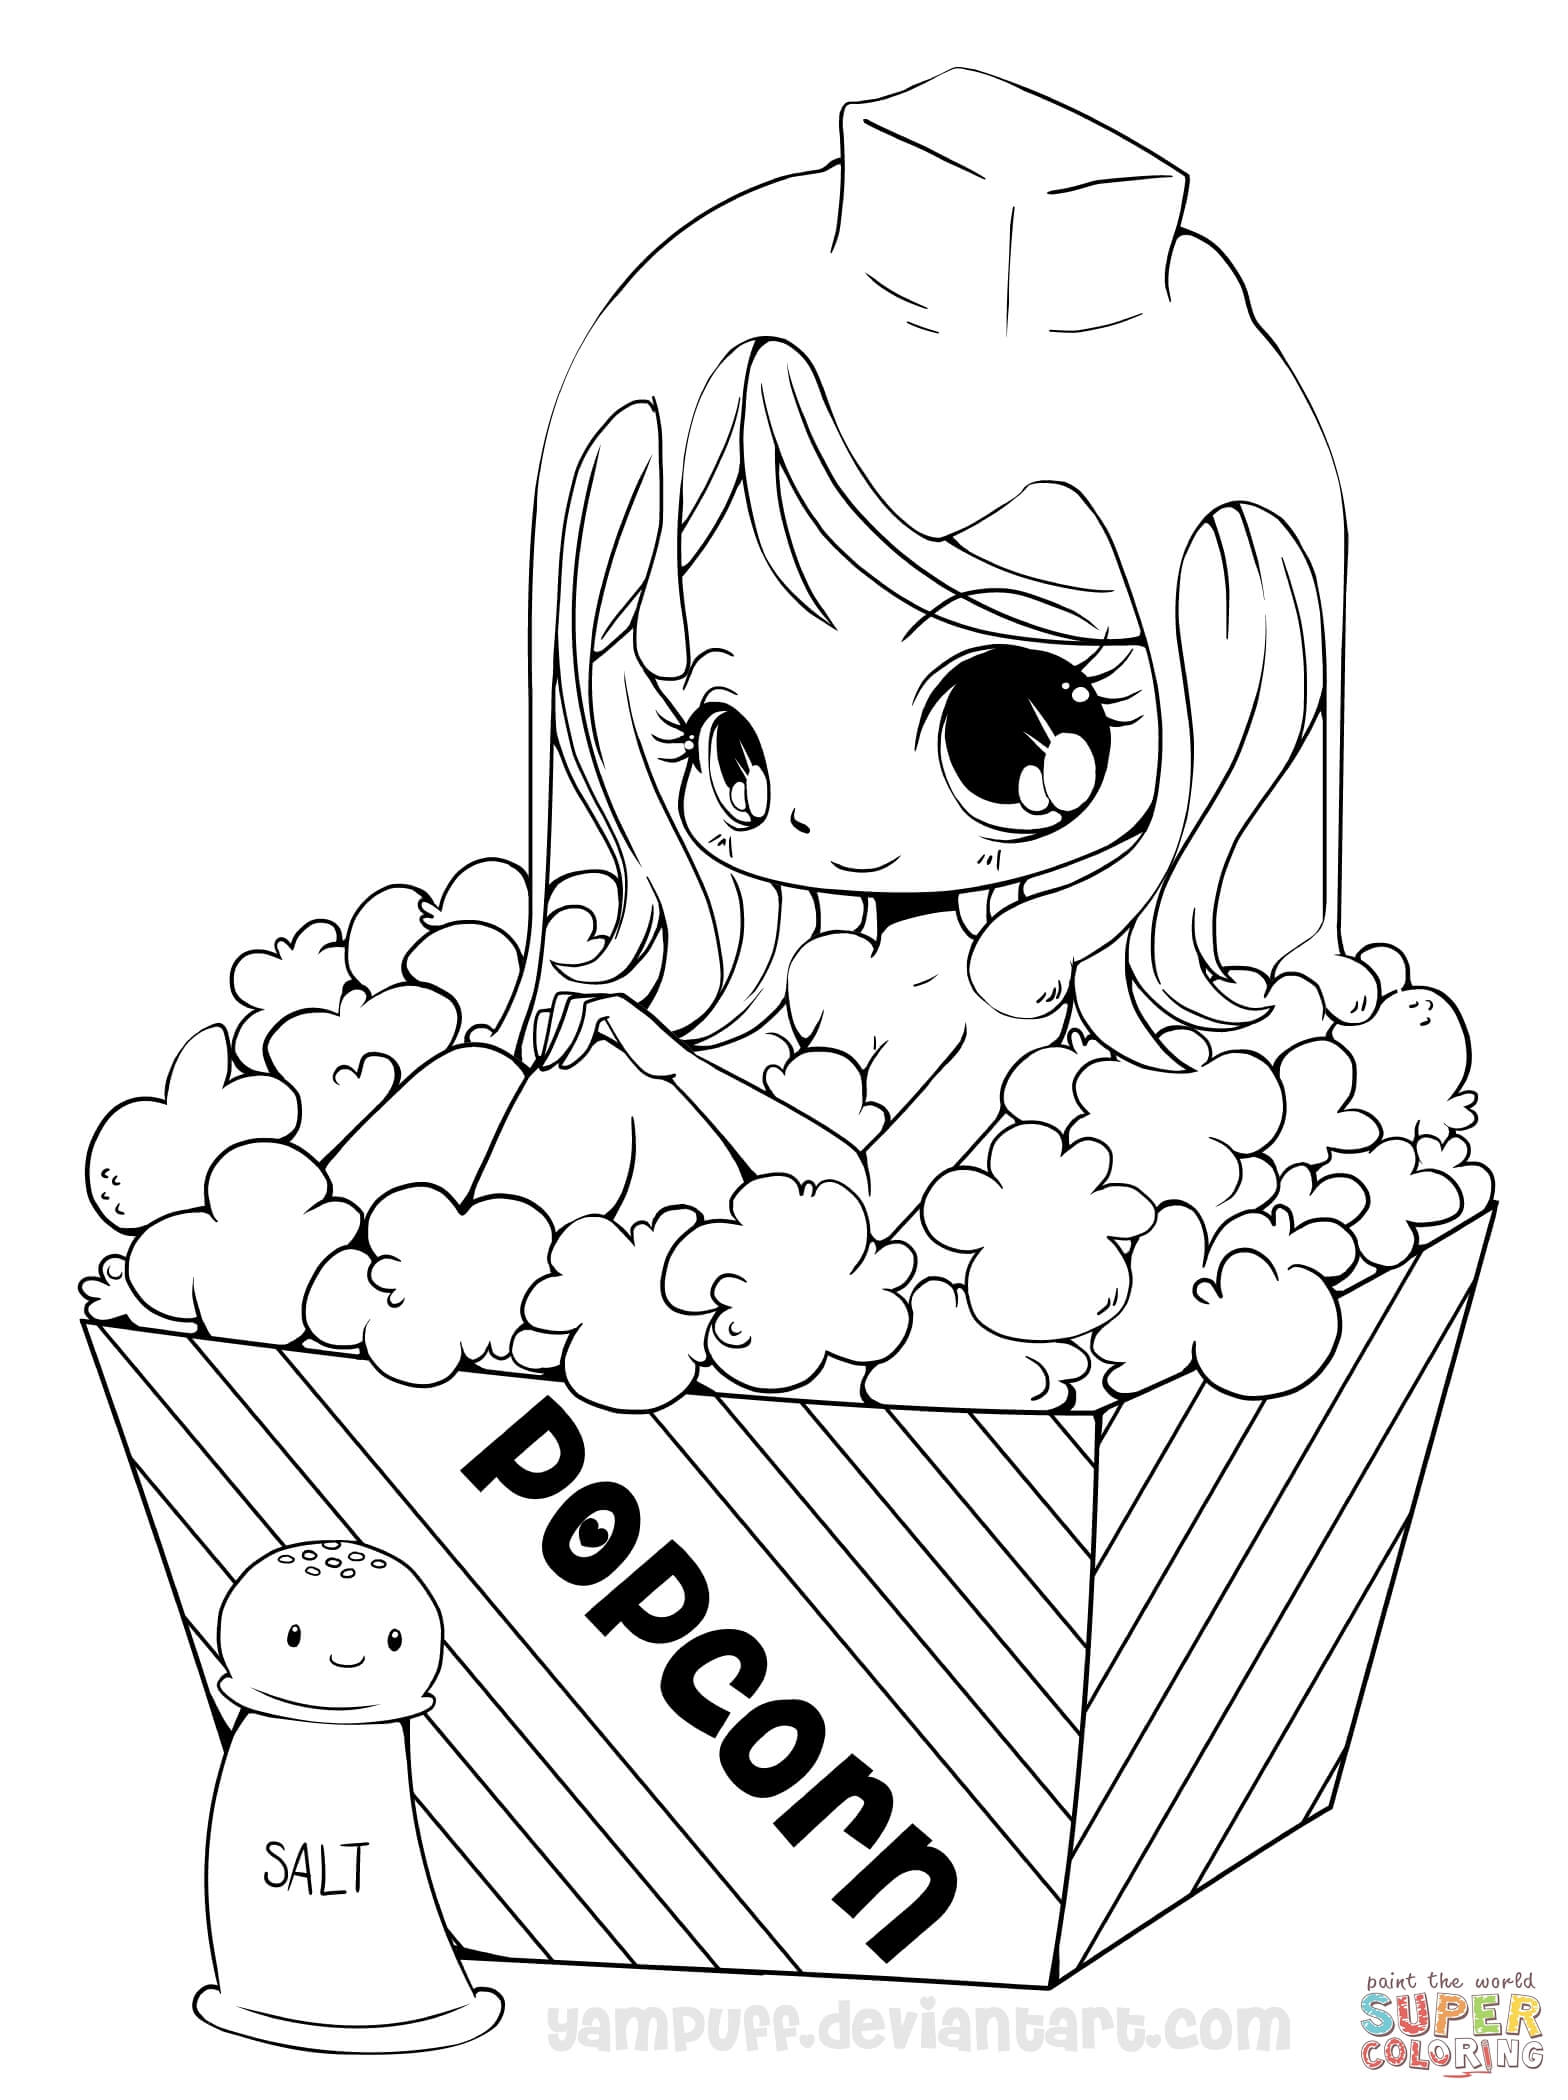 anime cat girl coloring pages anime cat girl coloring pages coloring home coloring pages anime cat girl